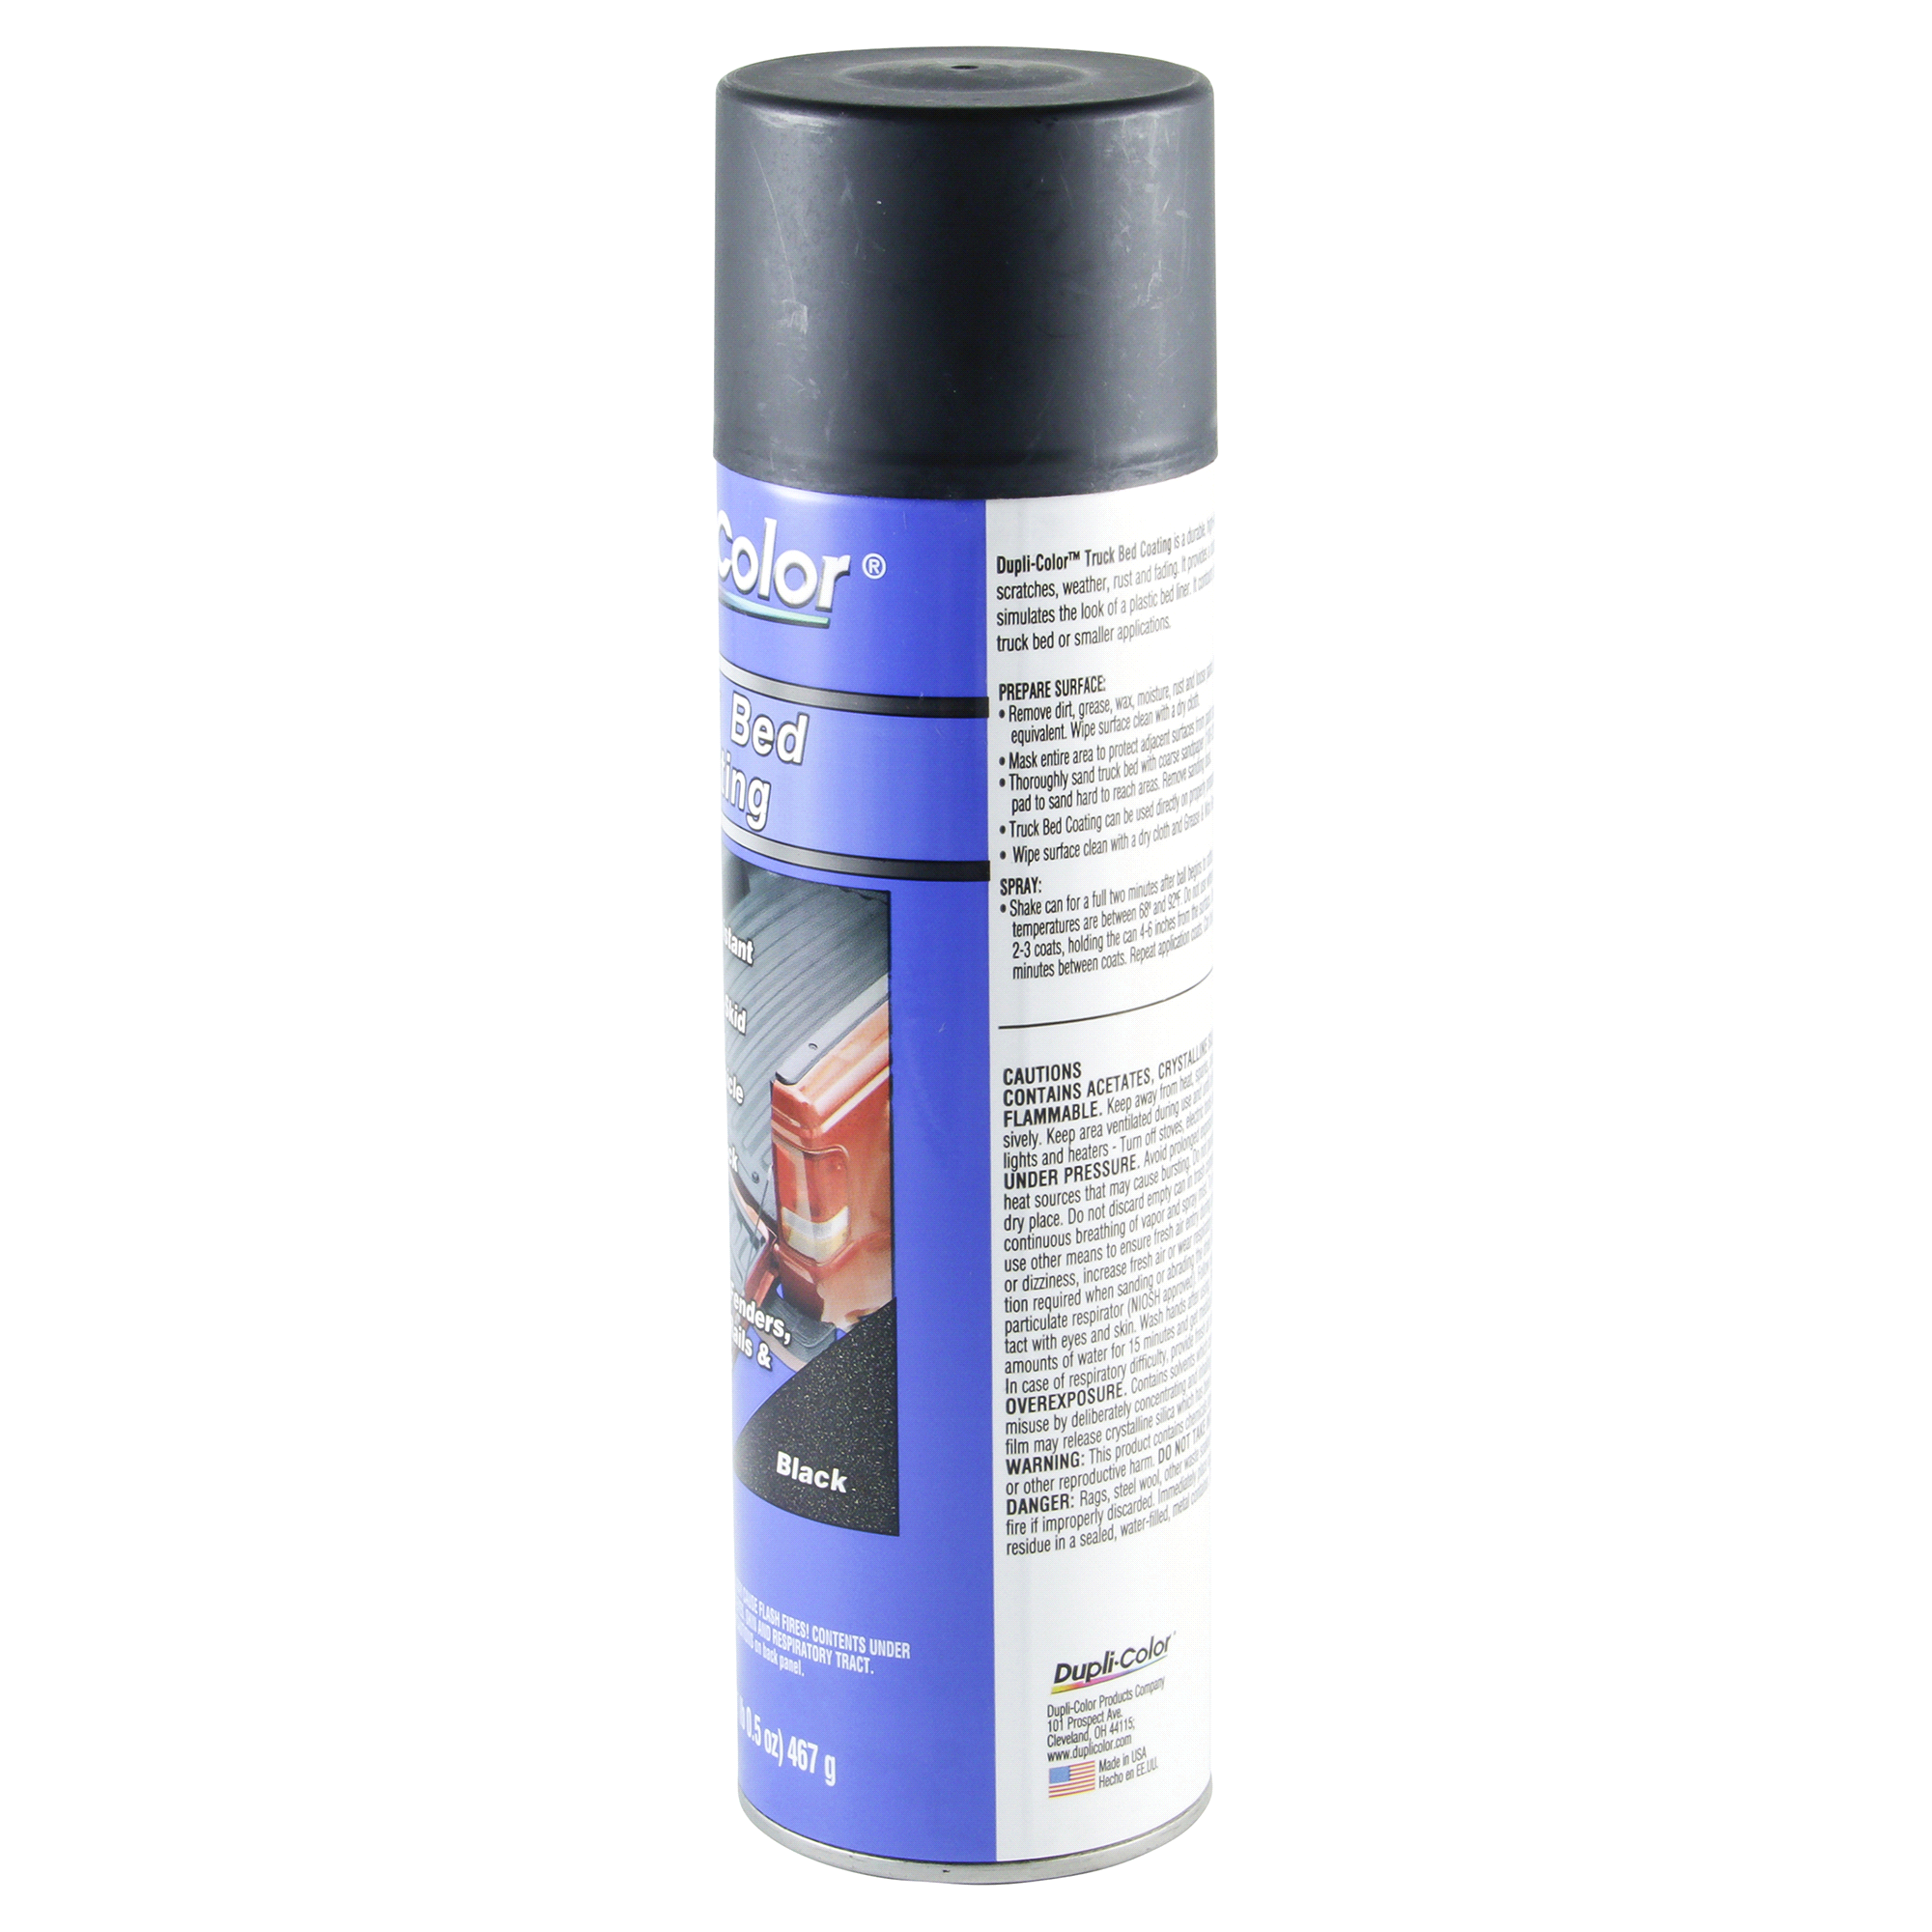 Dupli Color Tr250 Black Truck Bed Coating Aerosol 16 5 Oz Meijer Com